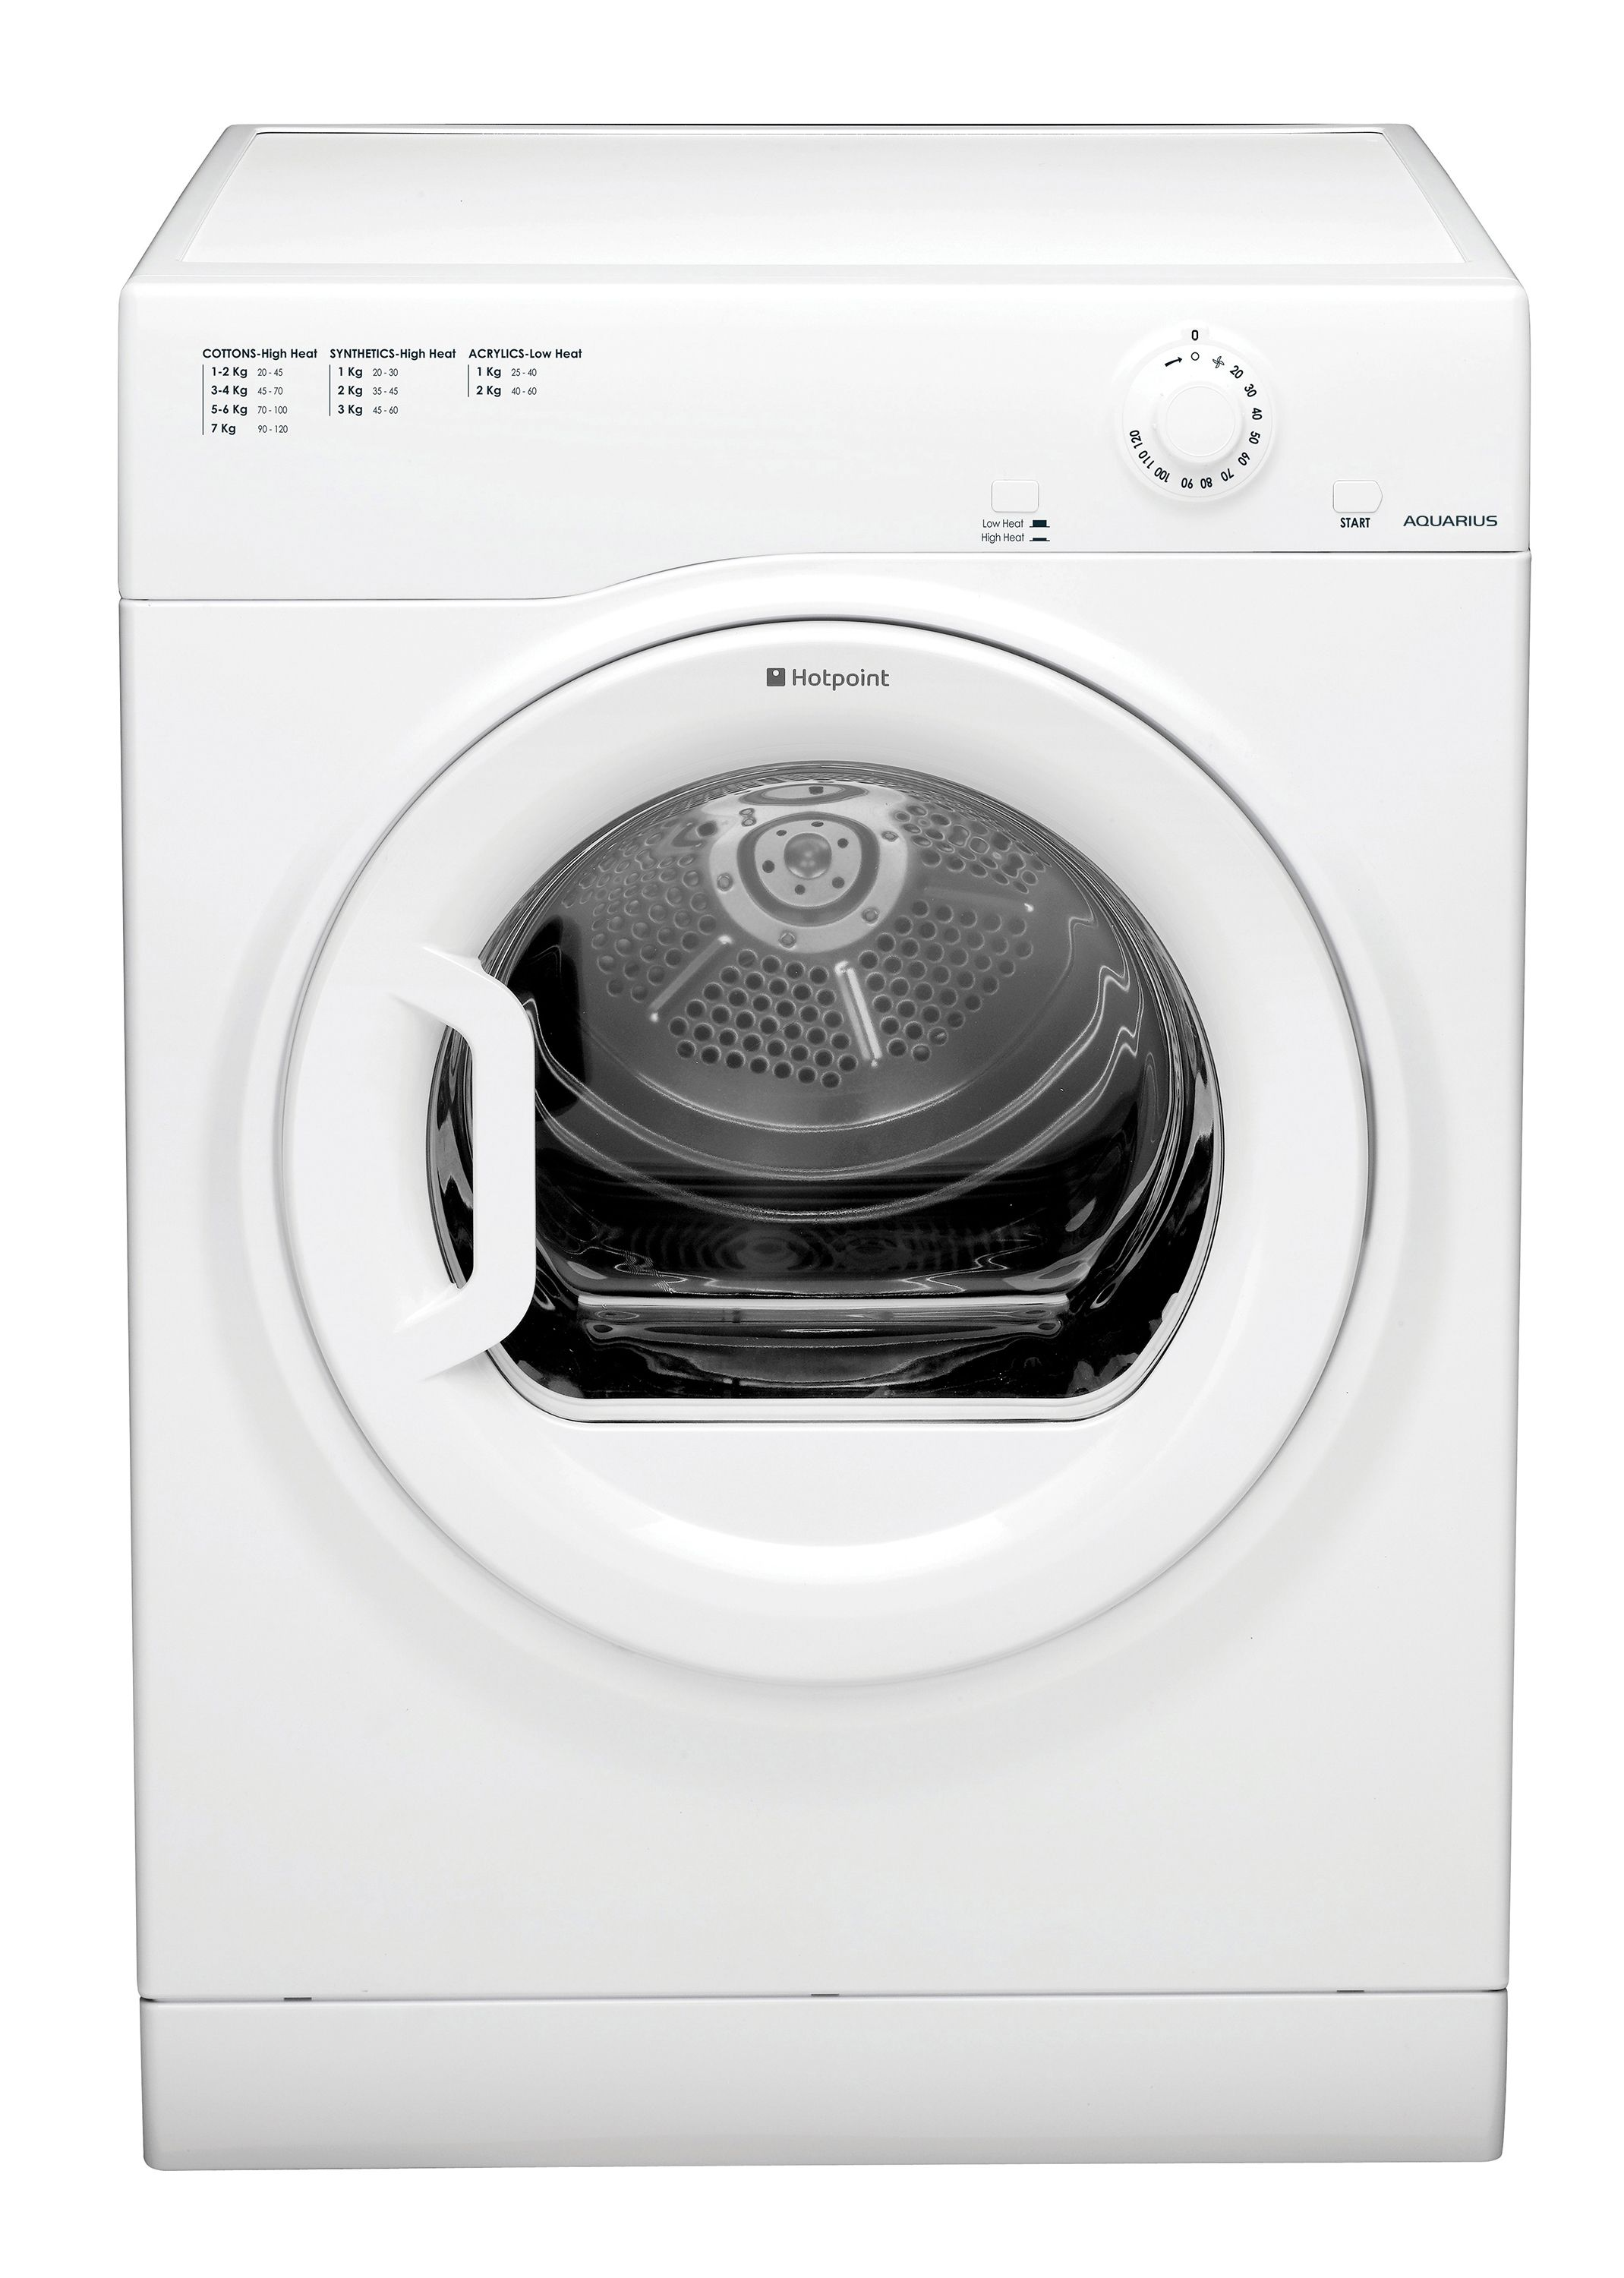 Animated Tumble Dryer ~ Hotpoint tvfm bgp white freestanding tumble dryer